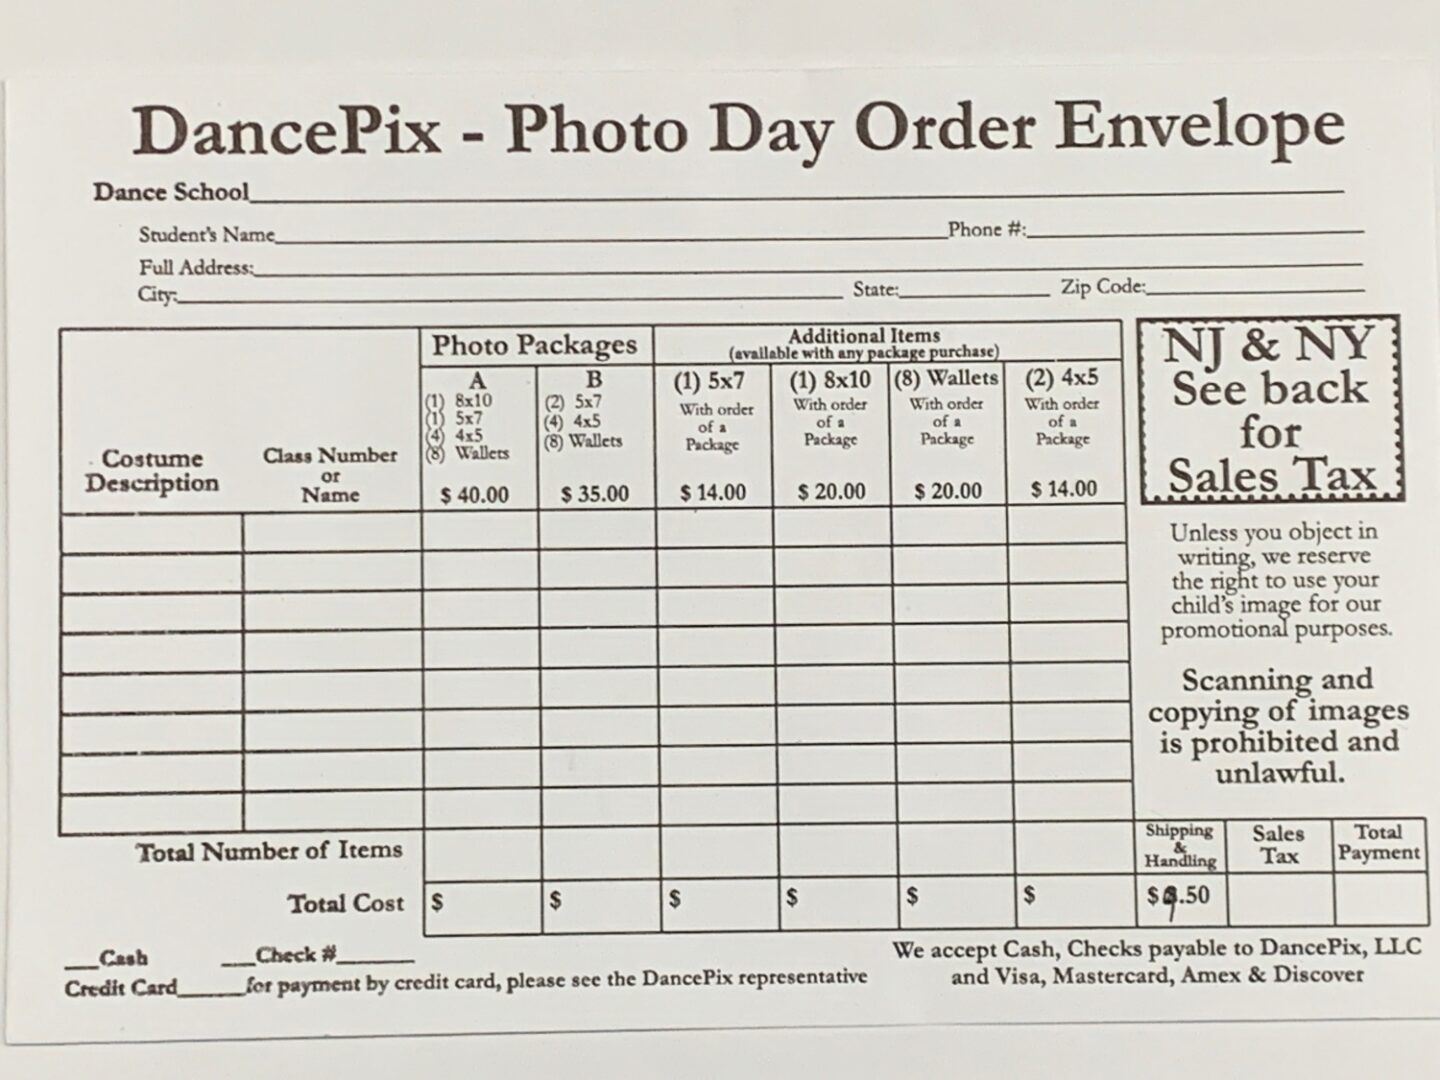 DancePix envelope